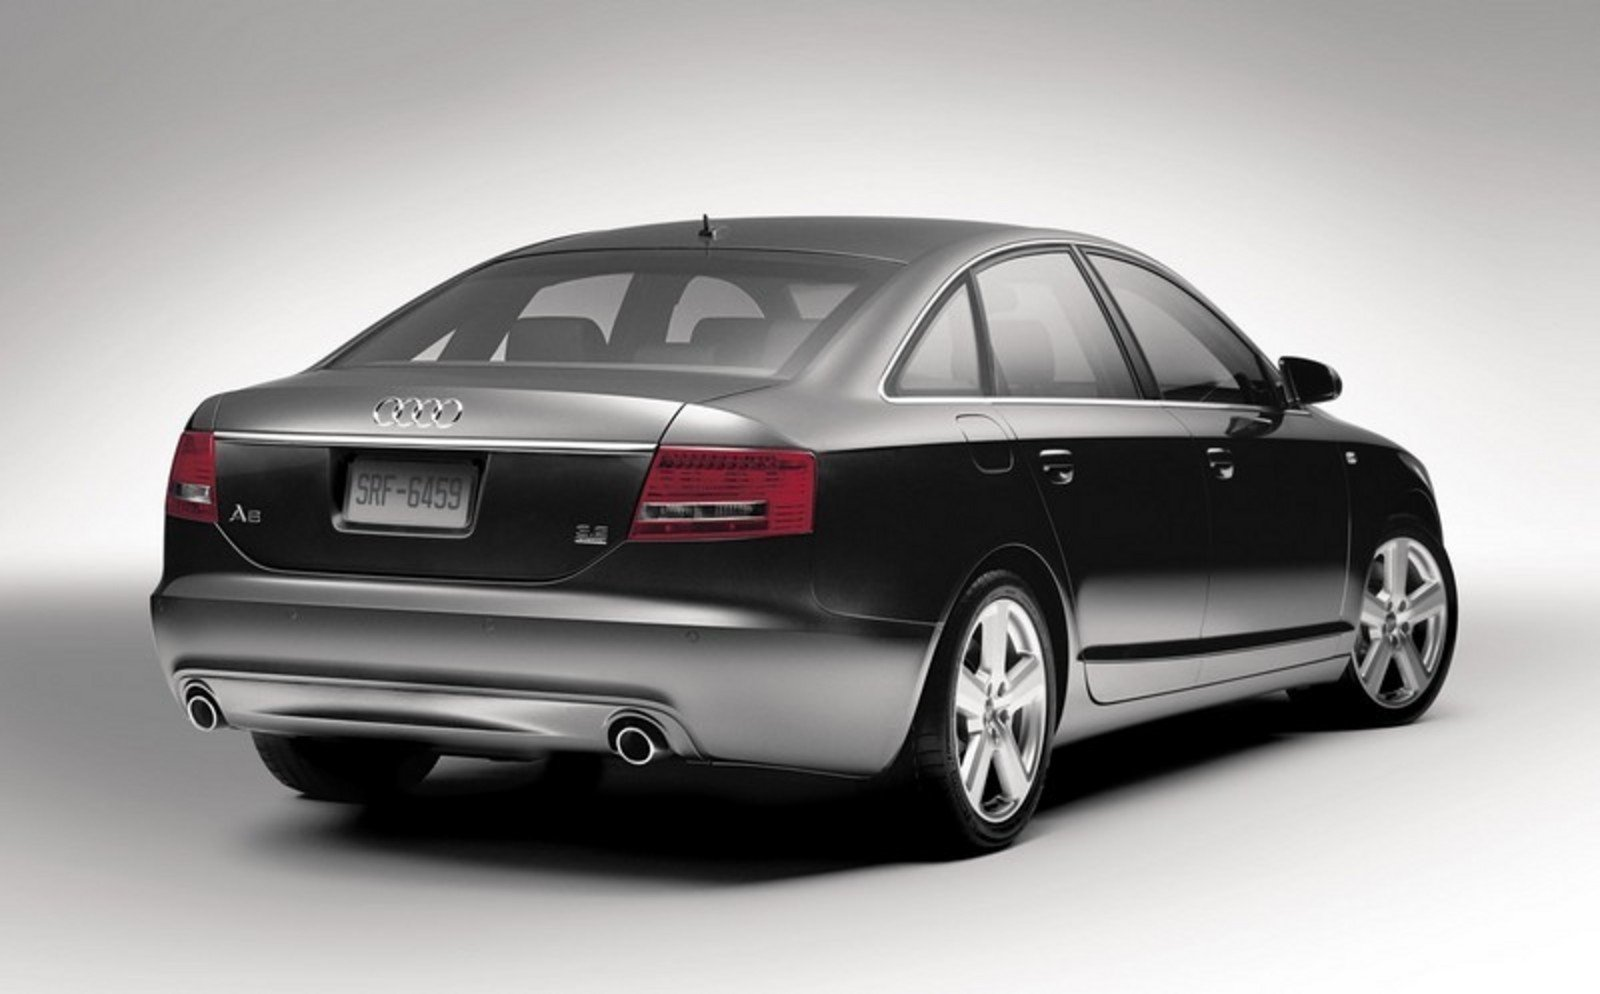 2006 audi a6 sedan picture 45278 car review top speed. Black Bedroom Furniture Sets. Home Design Ideas